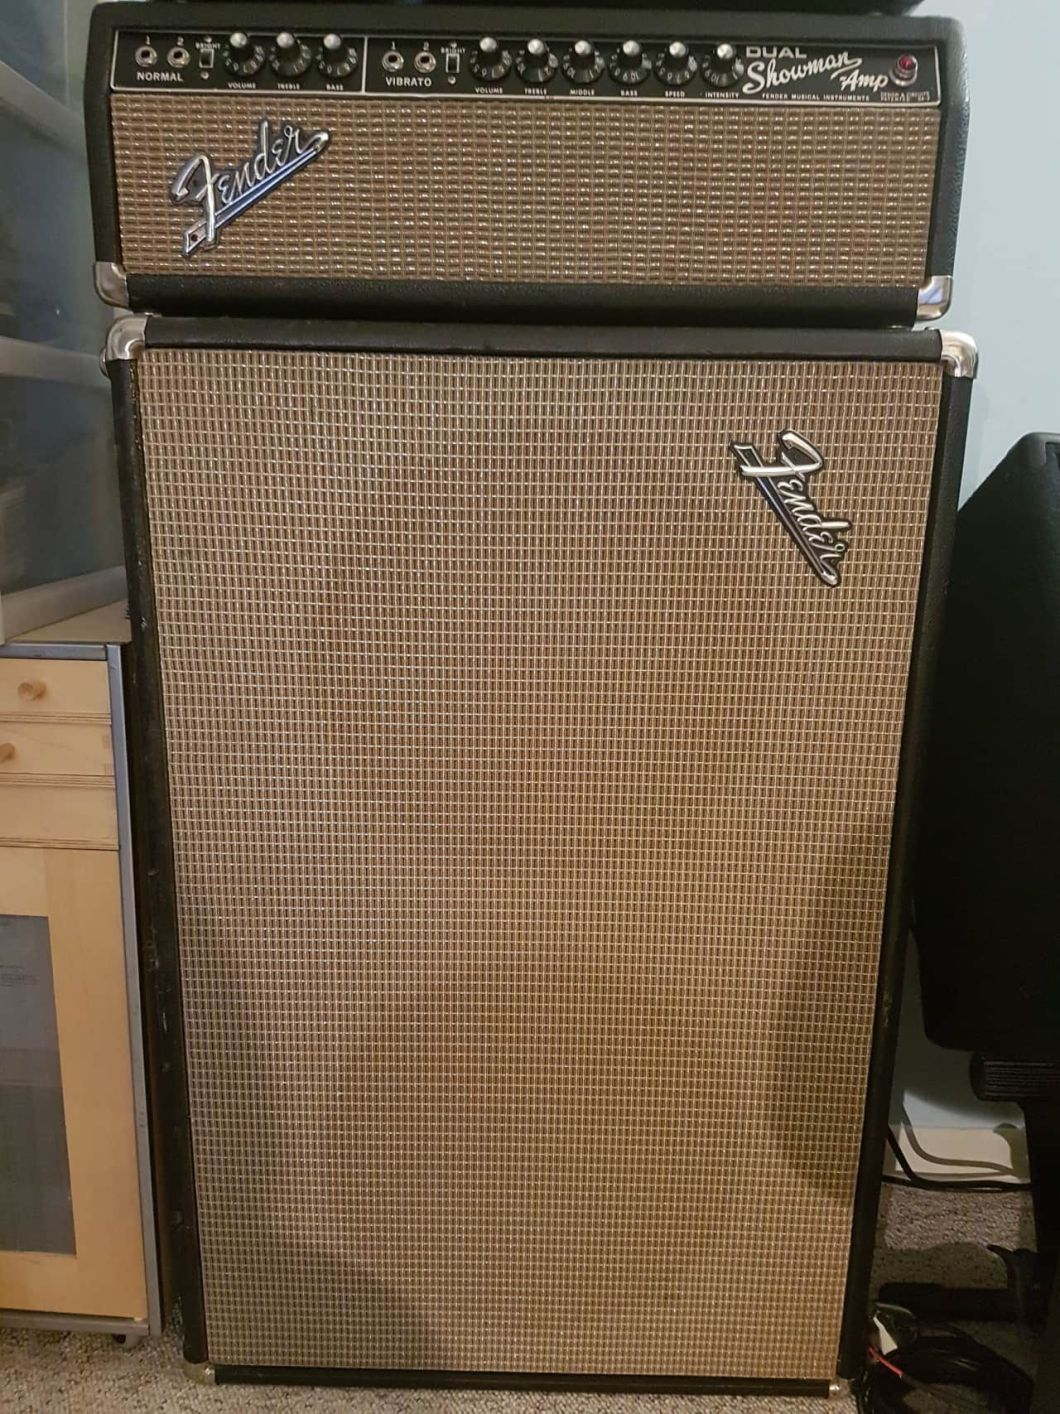 Up For Is My 1967 Fender Blackface Dual Showman Amp Head And Speaker Cabinet